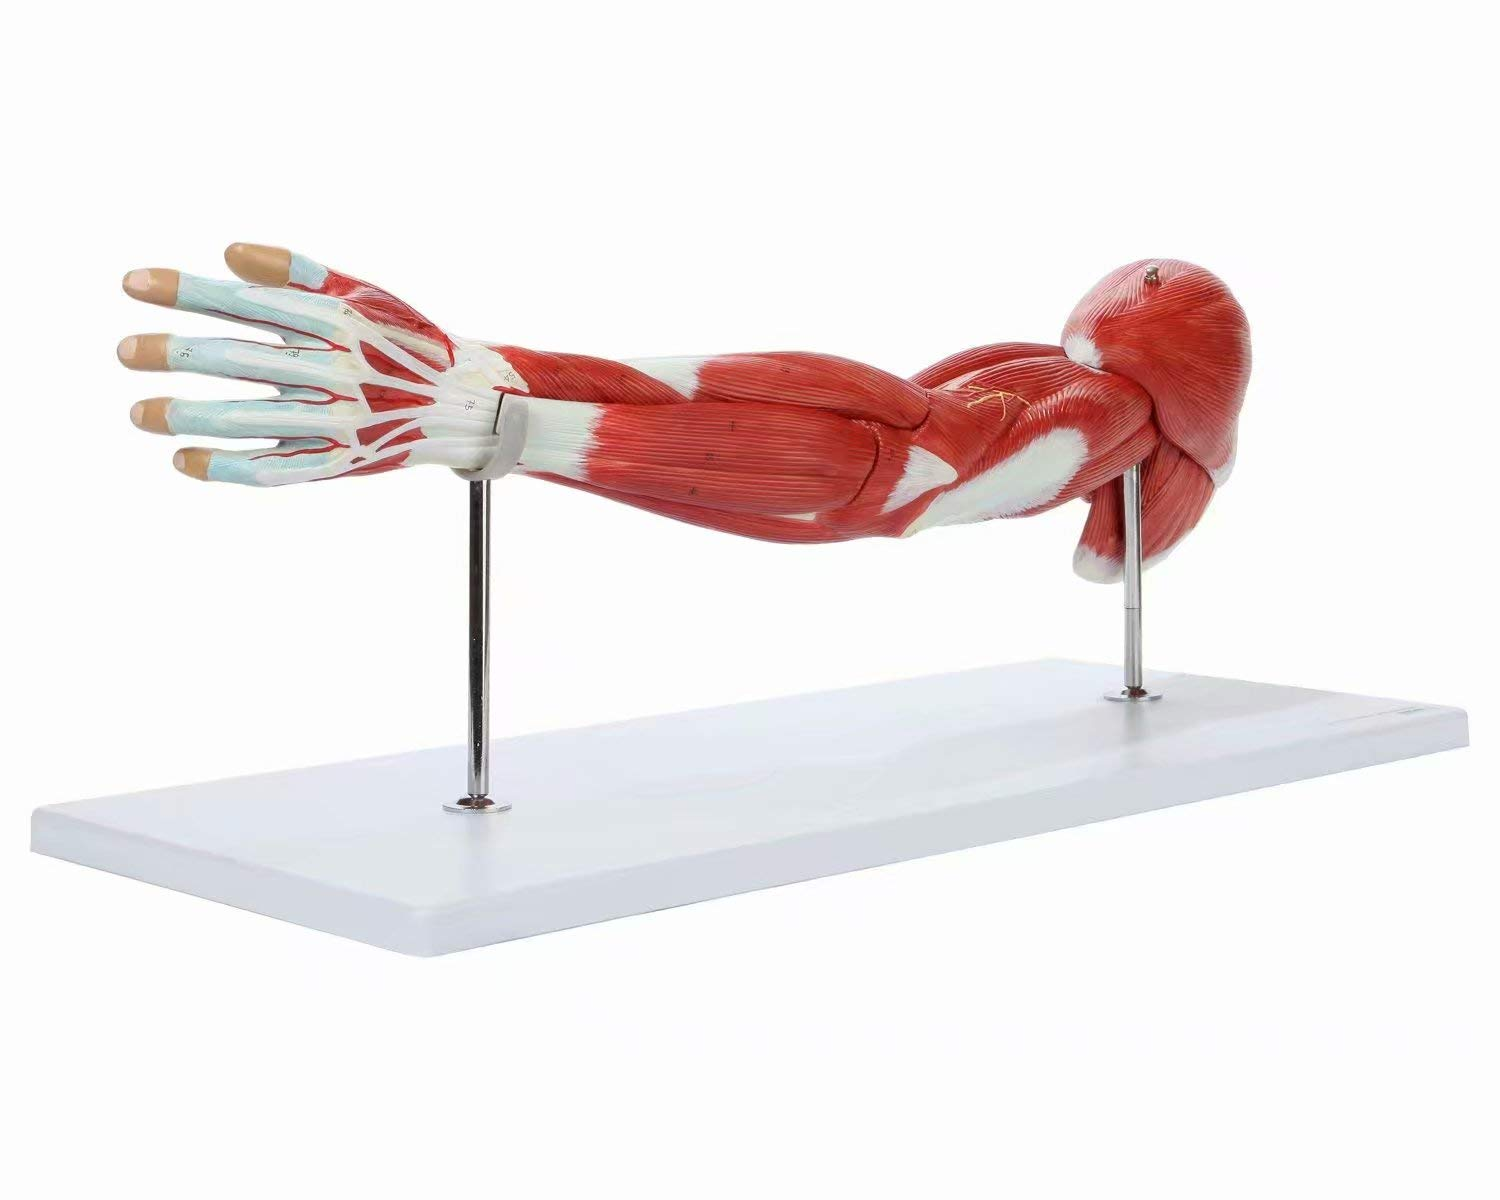 Alkita Muscular Arm Anatomy Model Life Size Arm Model Shows Muscles